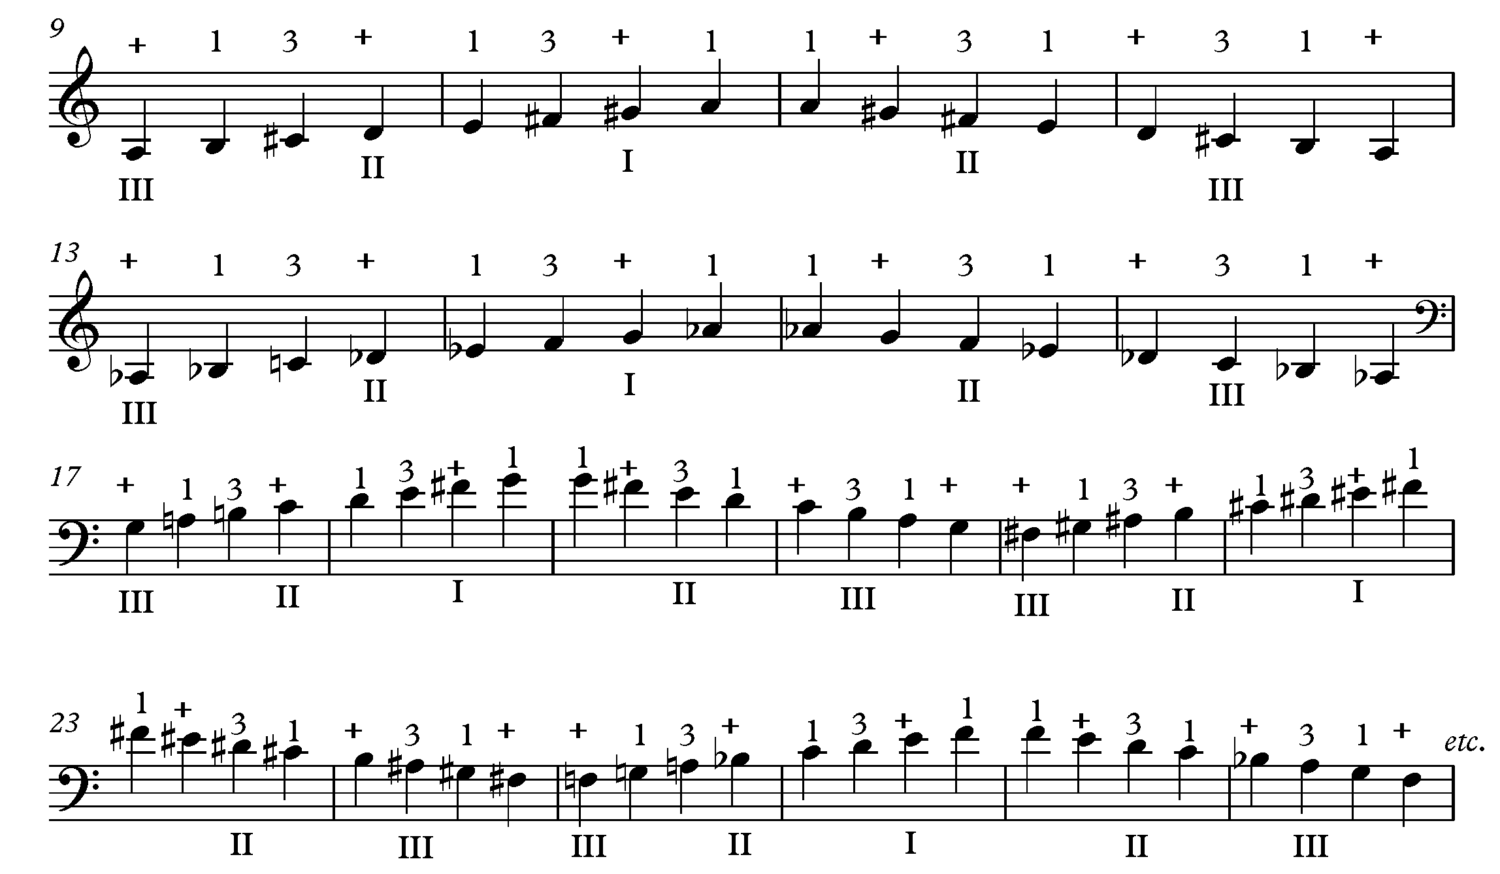 Thumb Position in the Lower Positions - Major Scale Exercise